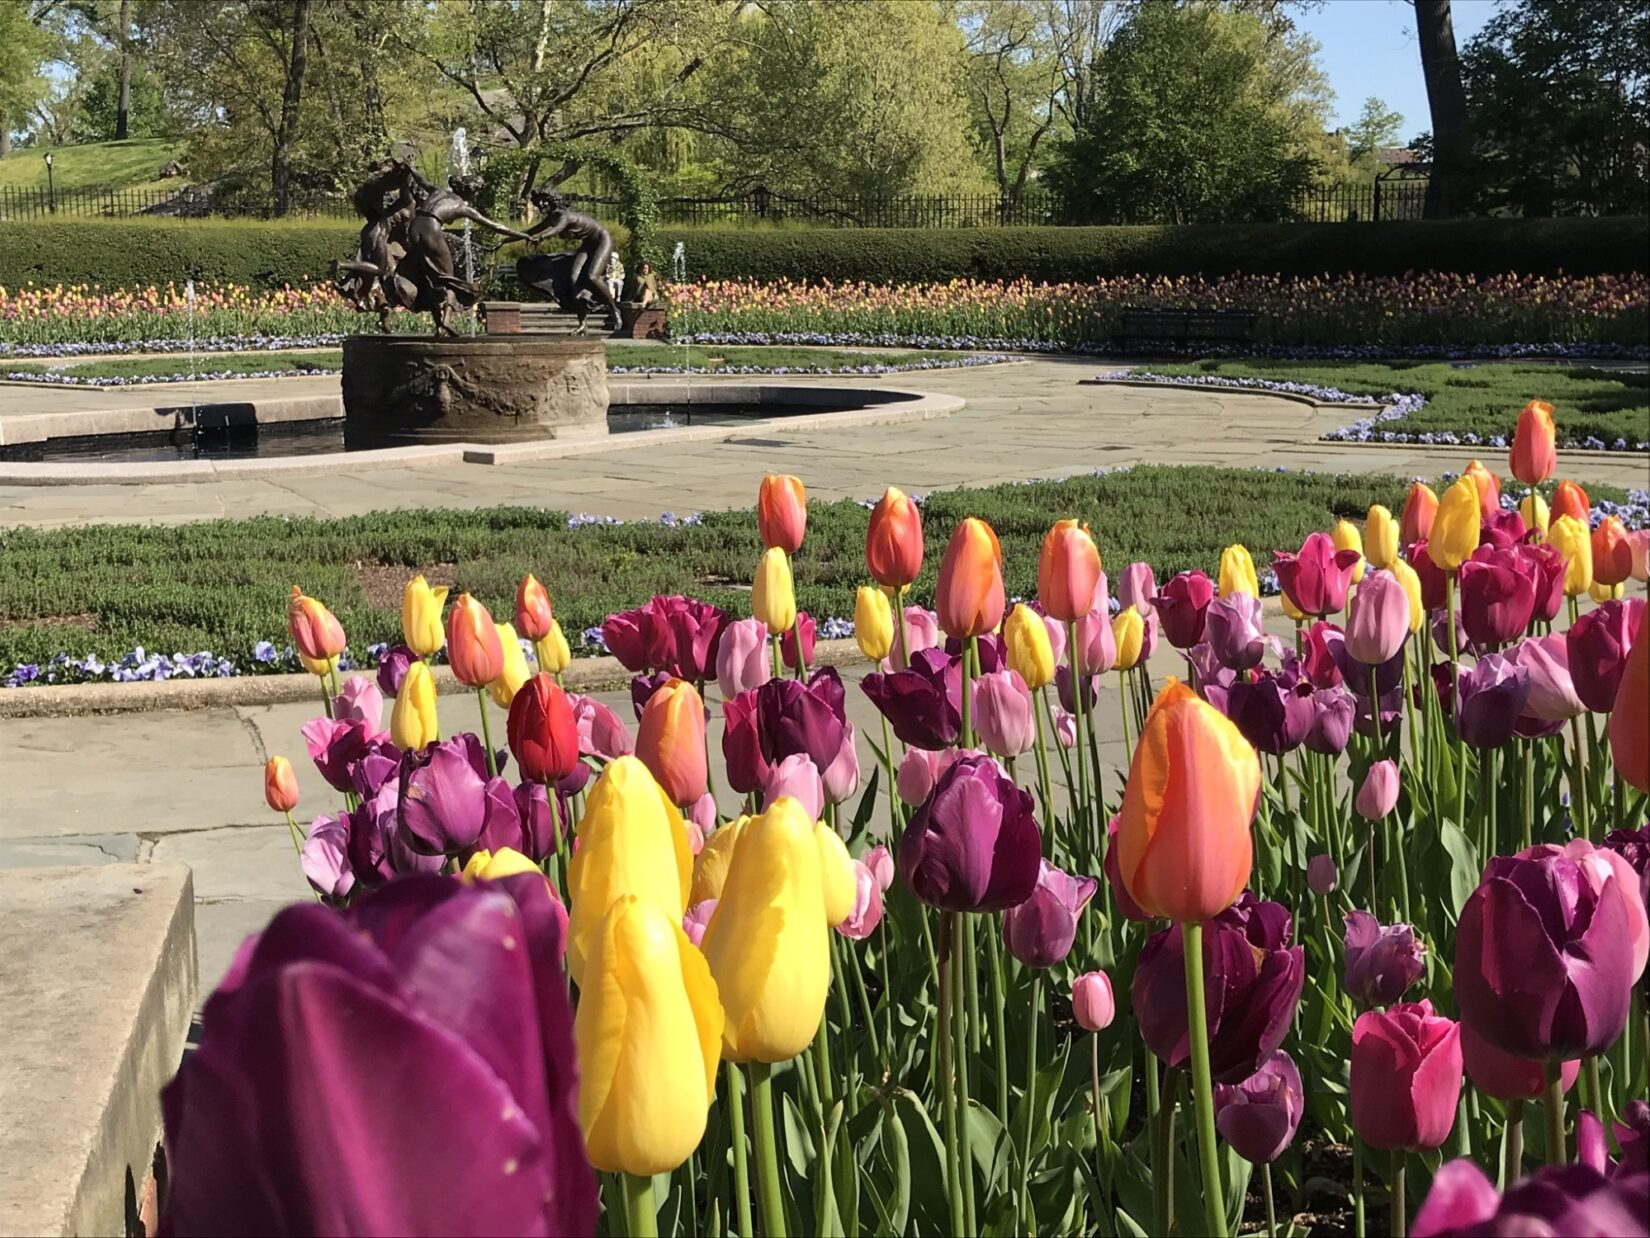 The fountain is pictured with yellow, pink, and purple flowers in the foreground.